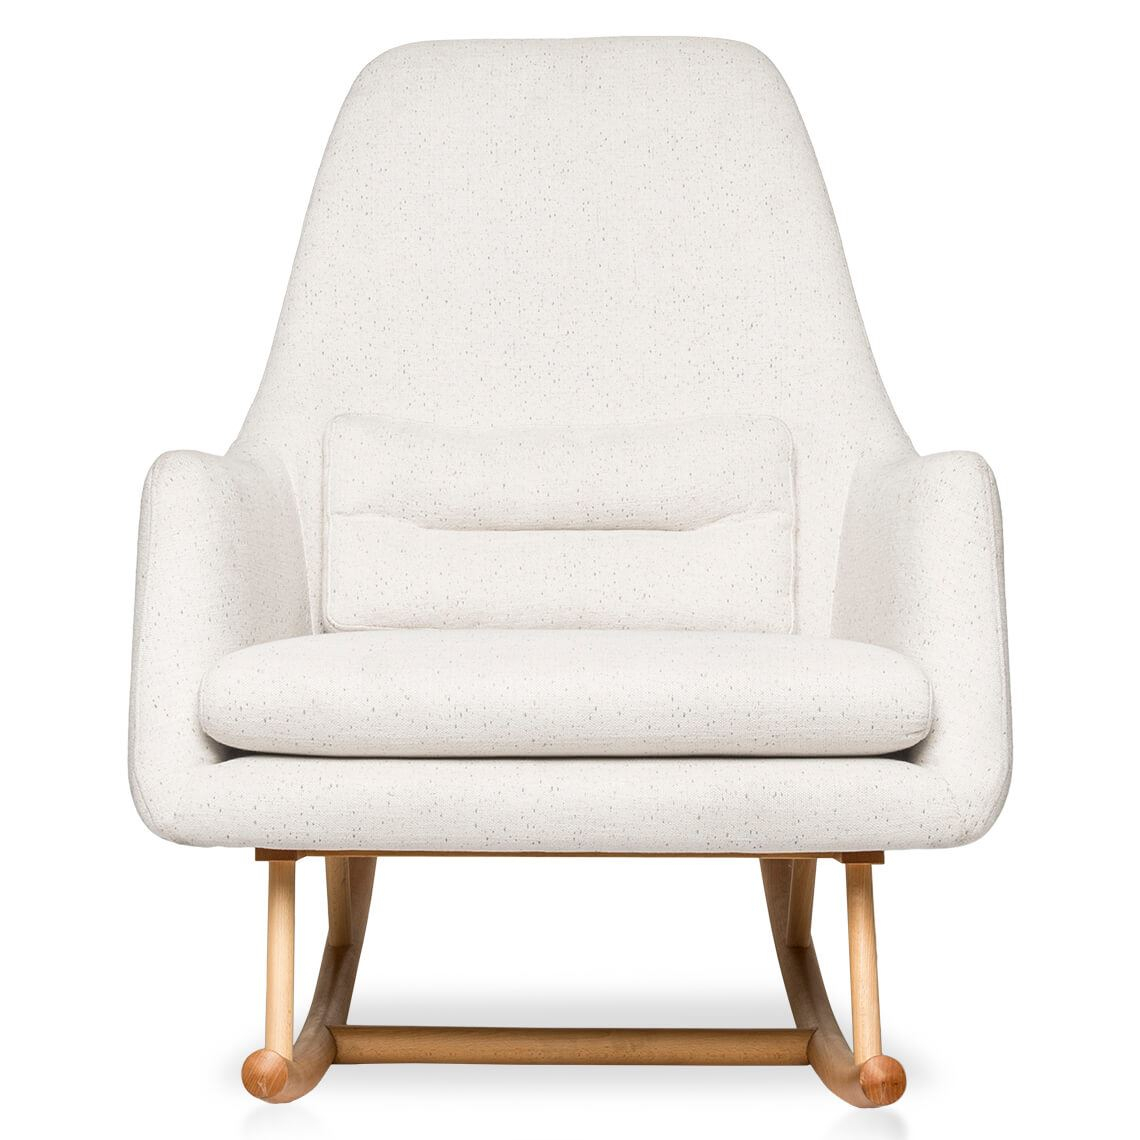 Evie Fabric Rocking Chair With Regard To Wooden Rocking Chairs With Fabric Upholstered Cushions, White (View 8 of 20)